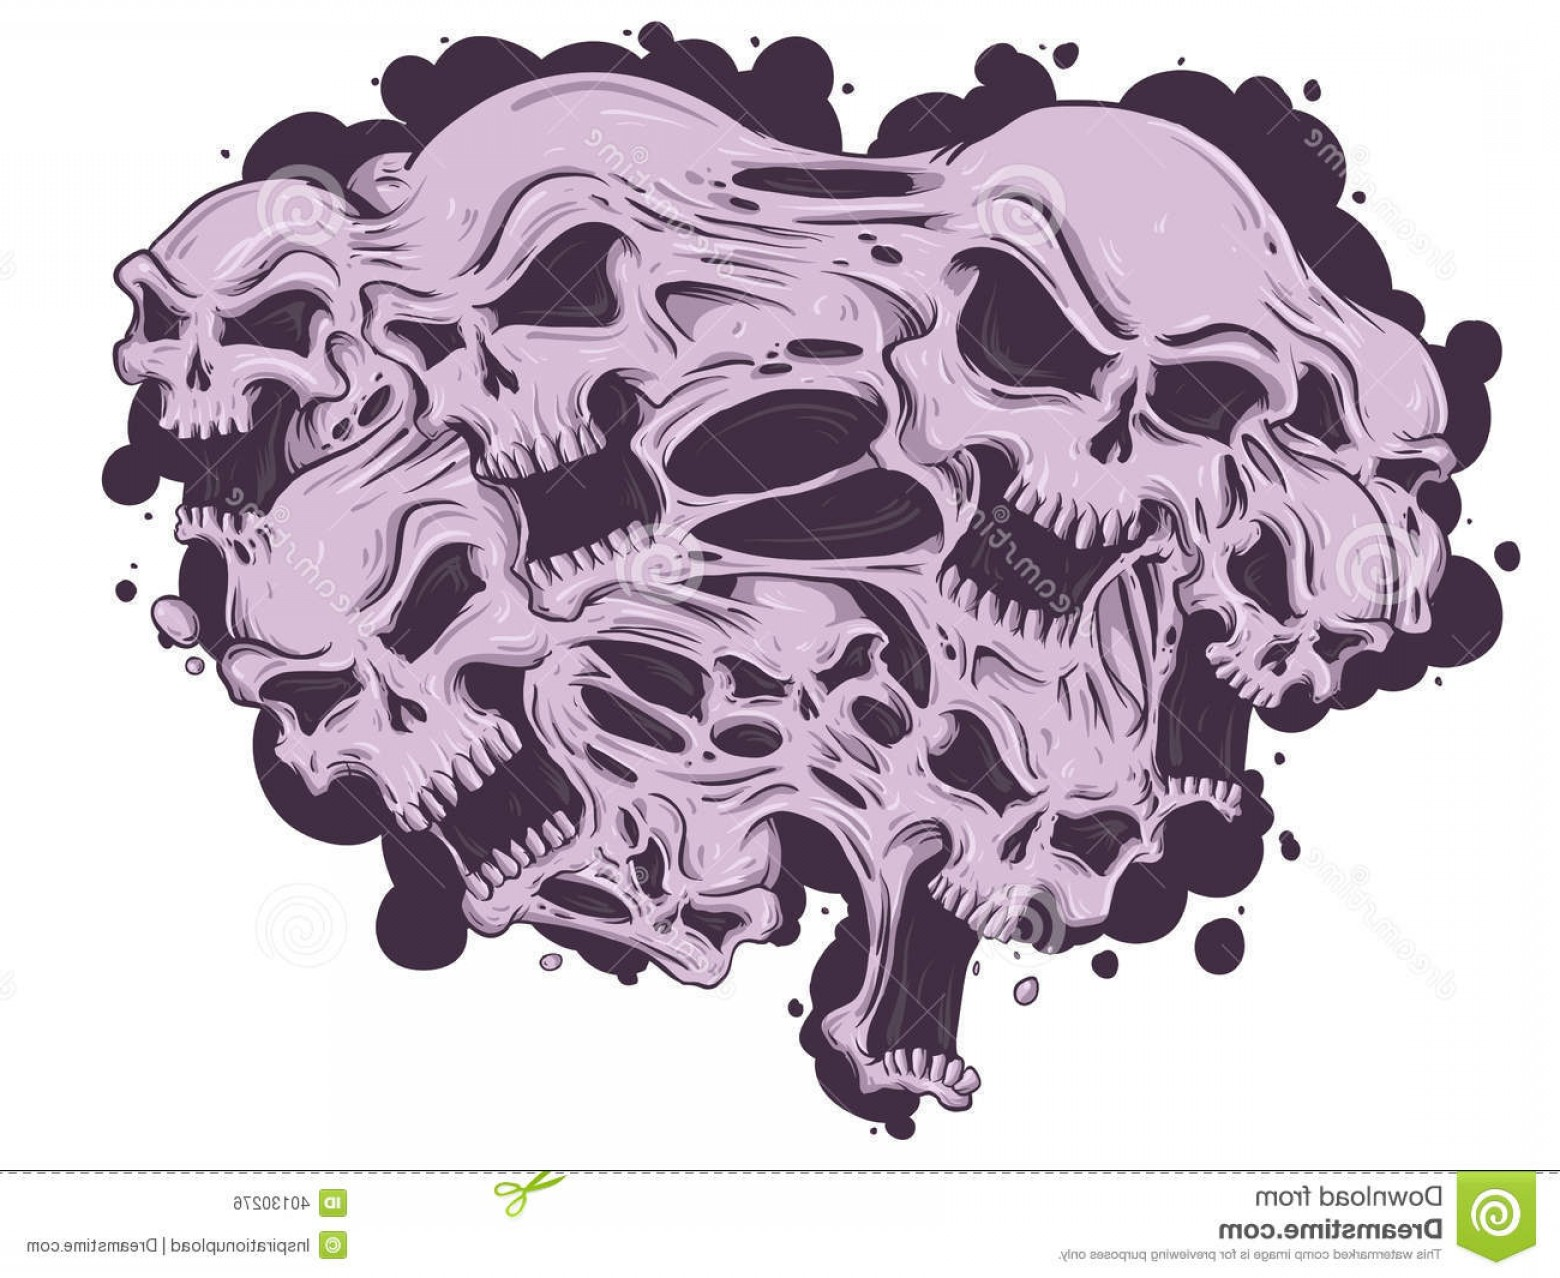 His And Hers Skulls Vector: Royalty Free Stock Image Melting Skulls Together Vector File Image